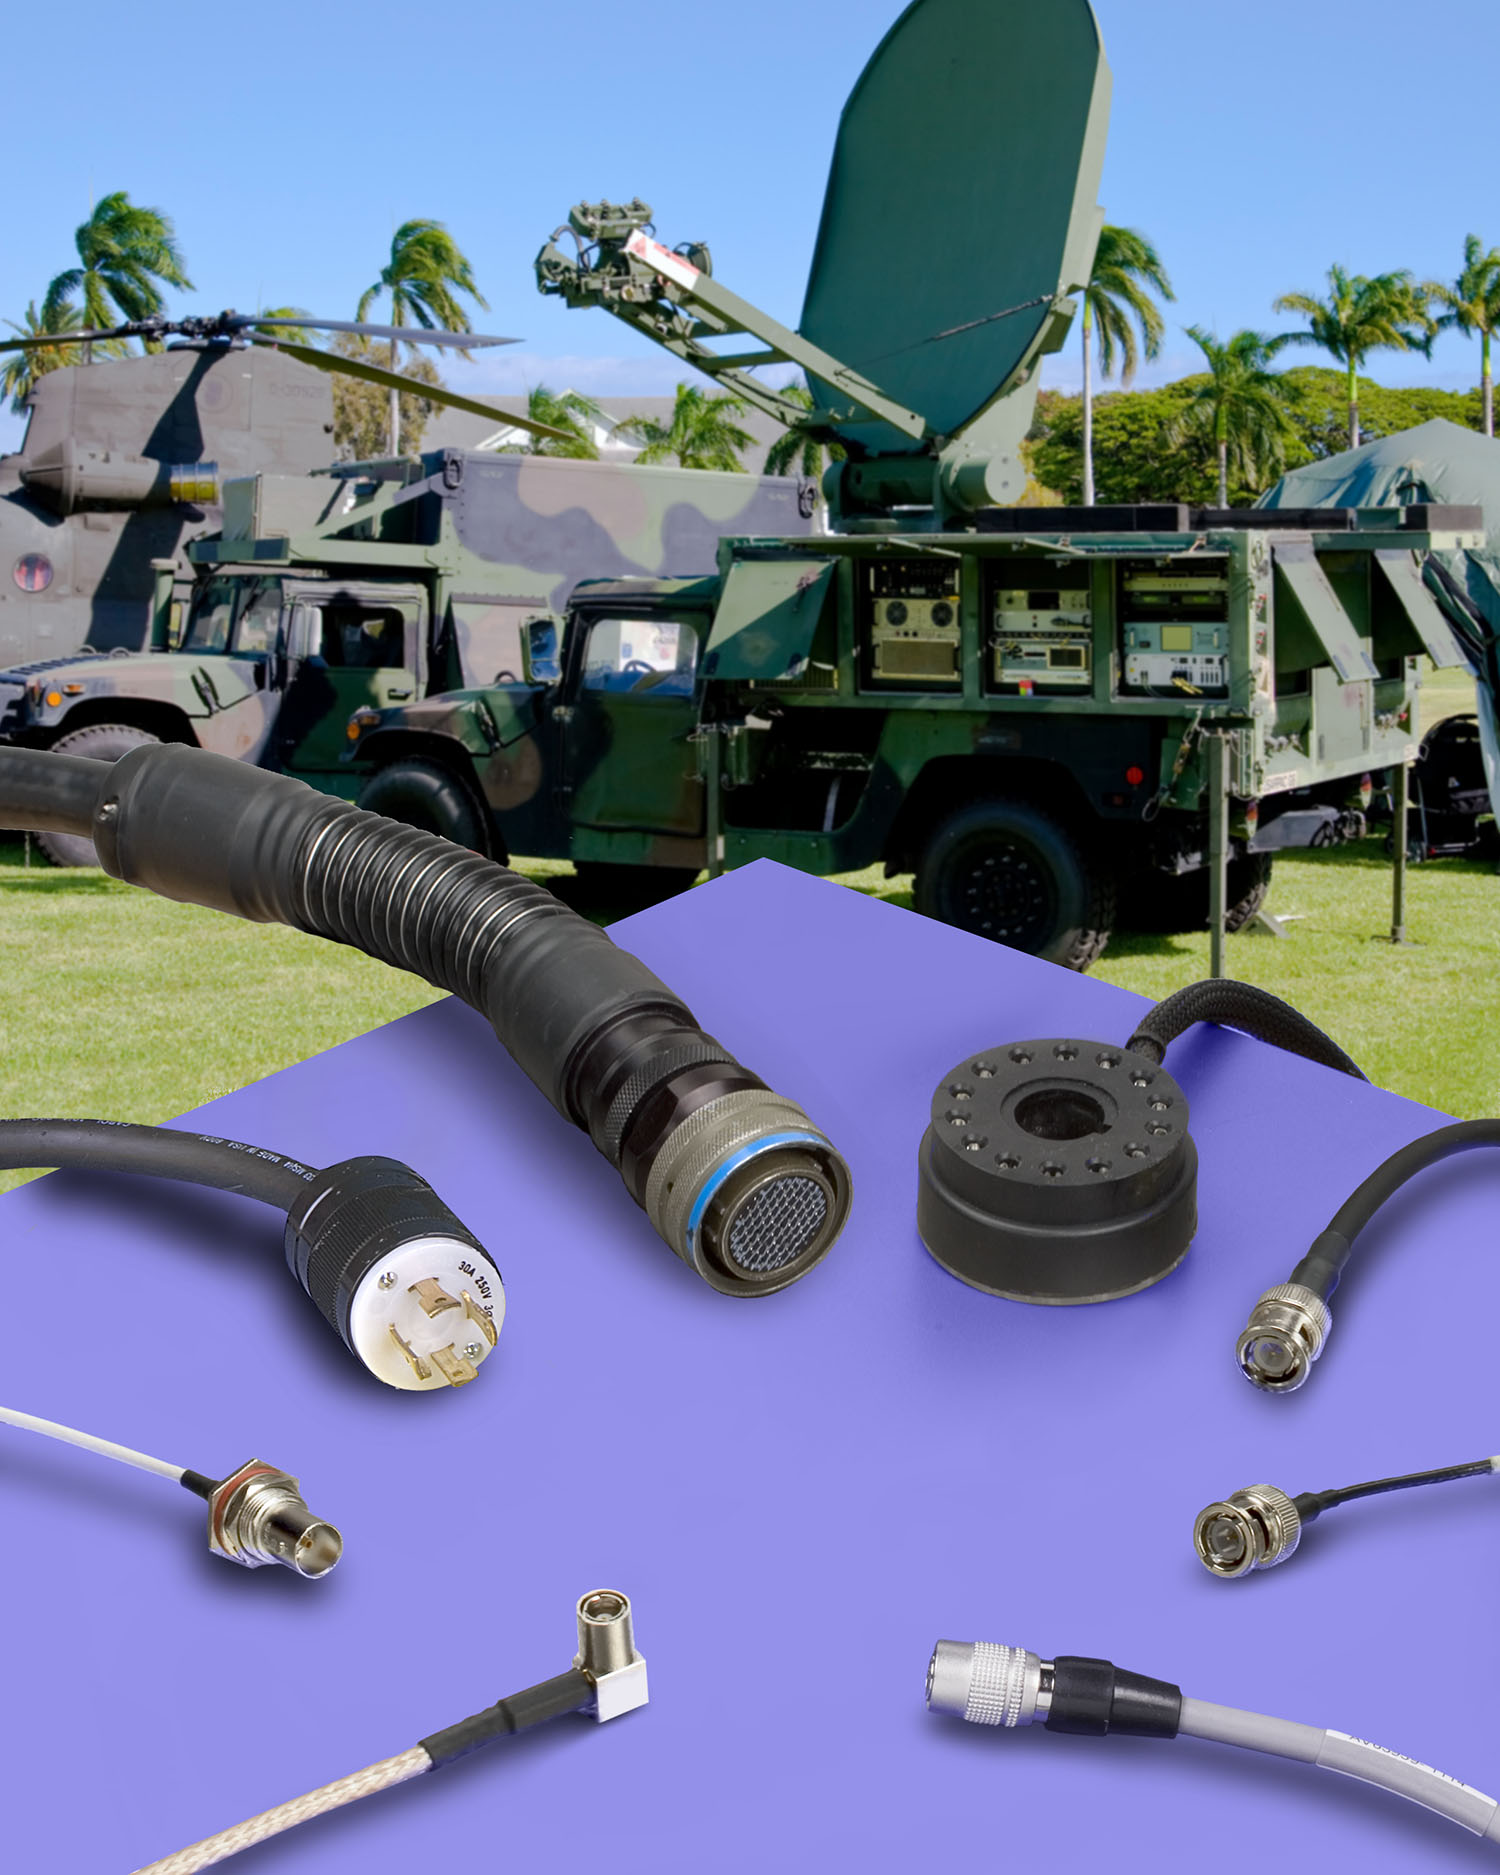 Wiring Harness Cable Assemblies For Aircraft Military More